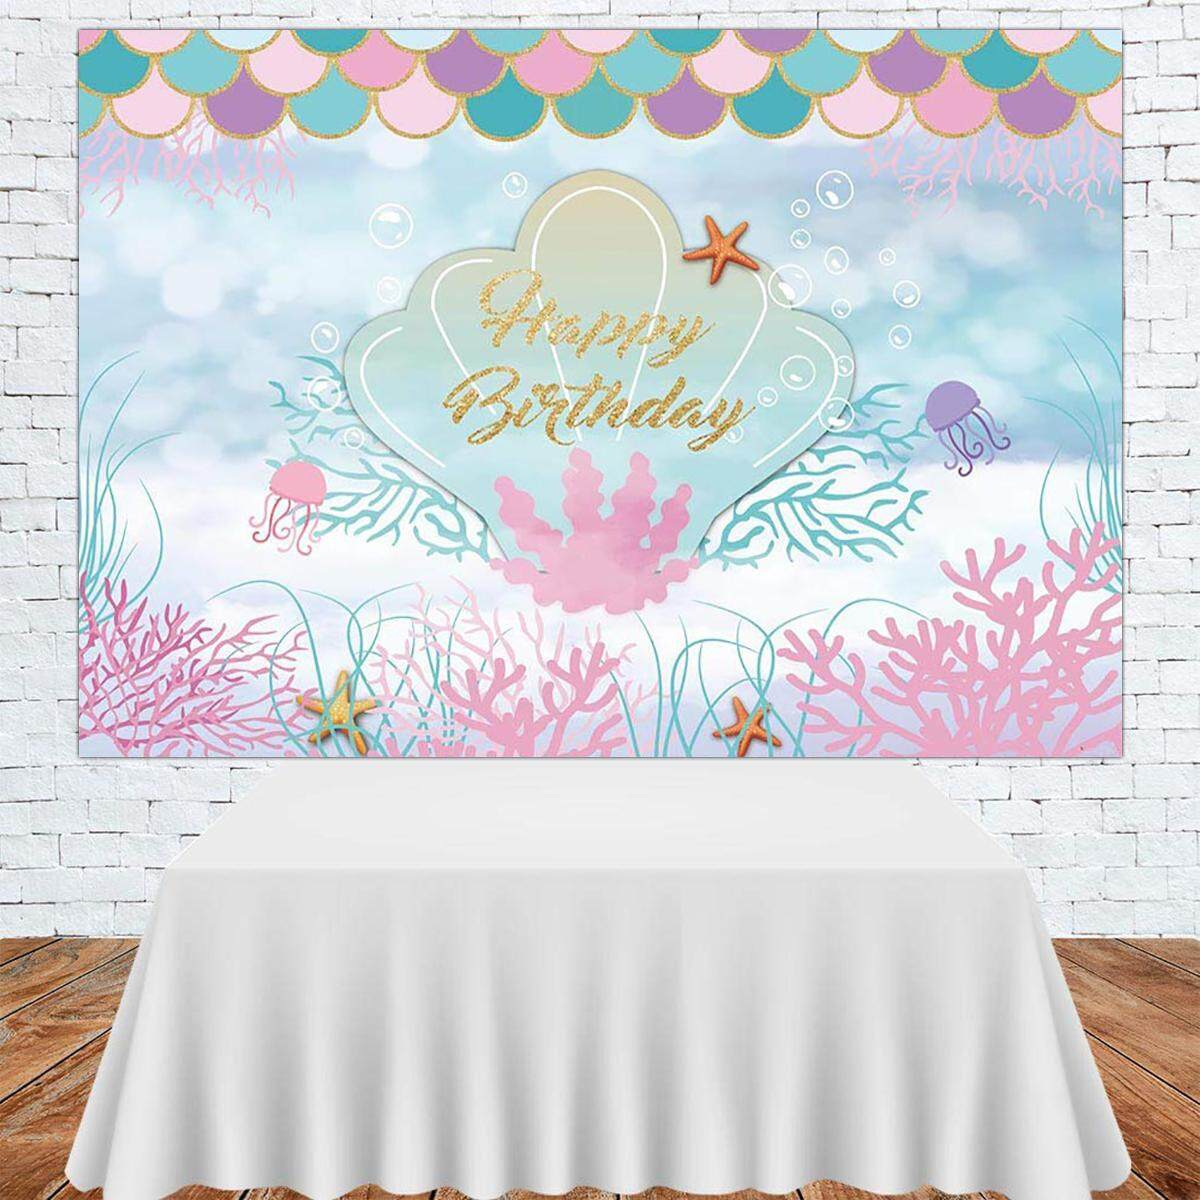 150x100cm The Sea Little Mermaid Backdrop Purple Pink Mermaid Scales Teal Shell Ocean Party Background Girls Birthday Decorations Lazada Ph